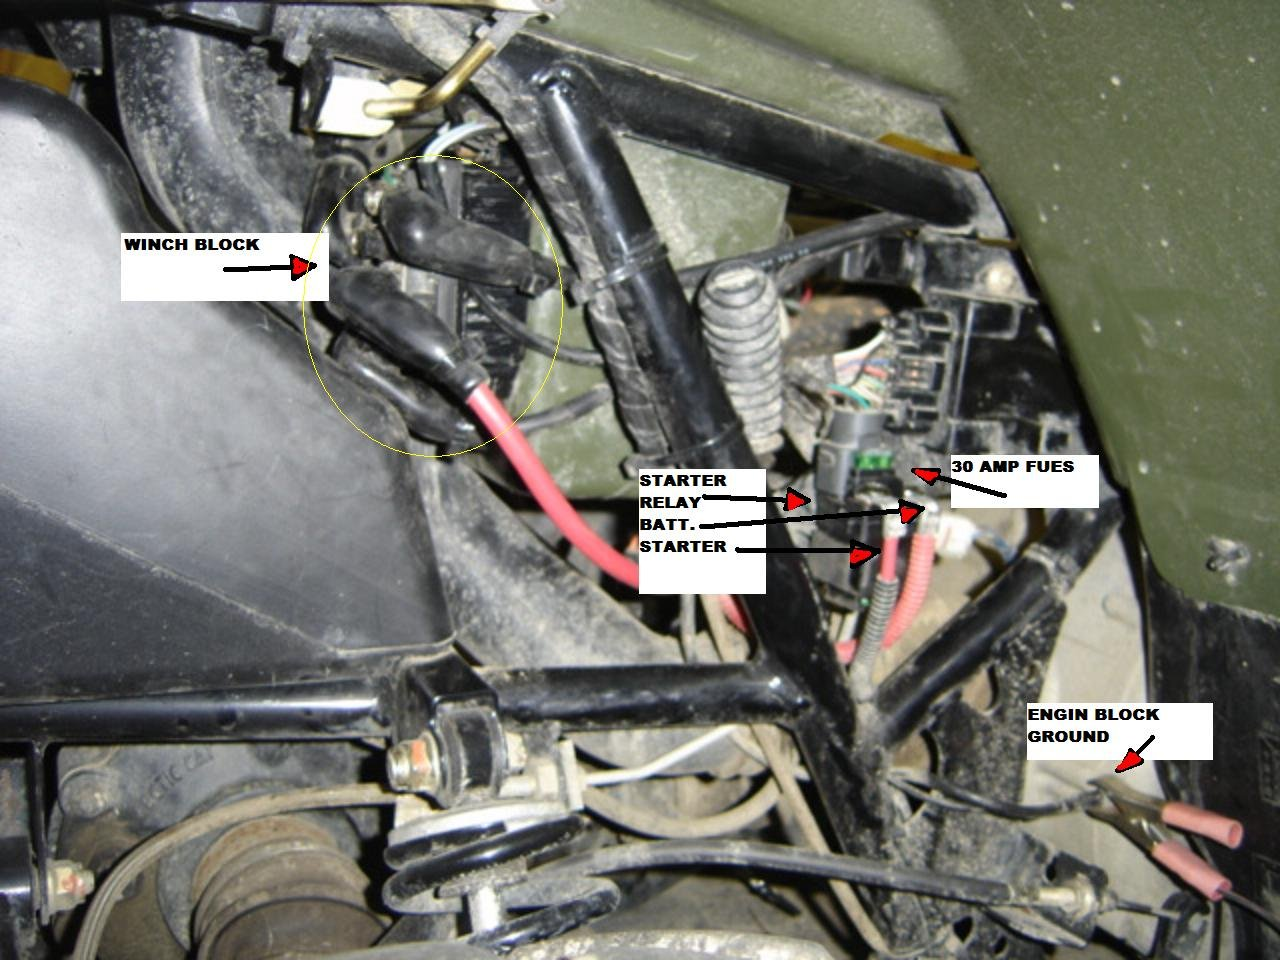 Wiring Diagram For Winch On Yamaha Grizzly - Wiring ...